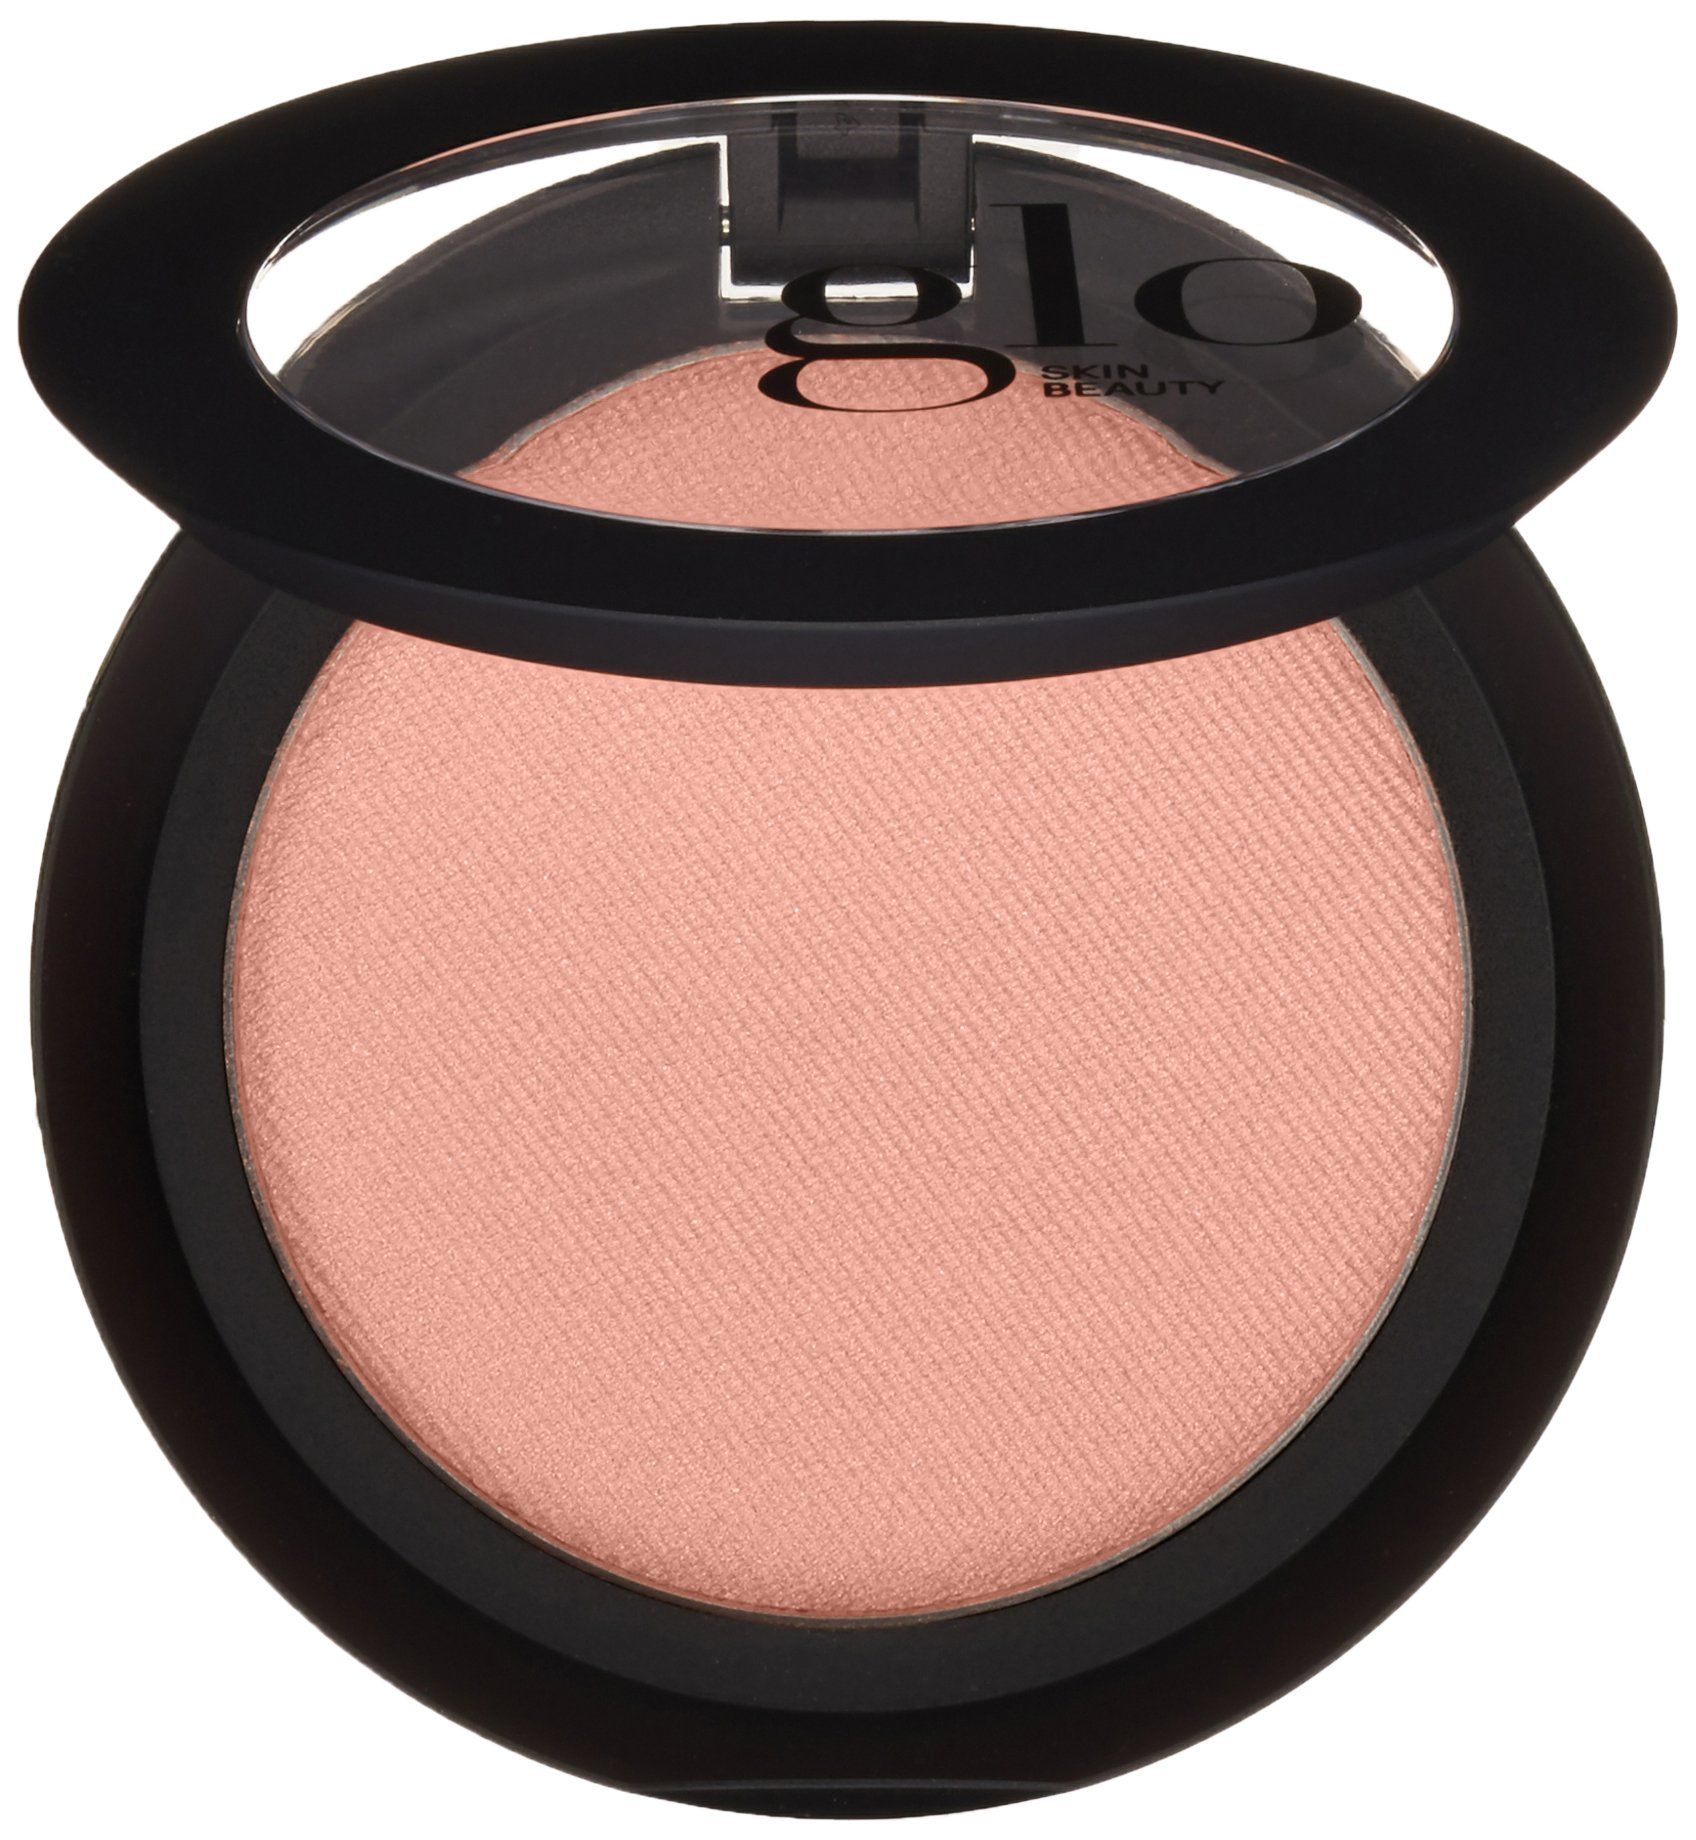 Glo Skin Beauty Powder Blush in Sweet - Shimmery Soft Peachy Pink   9 Shades   Cruelty Free, Talc Free Mineral Makeup